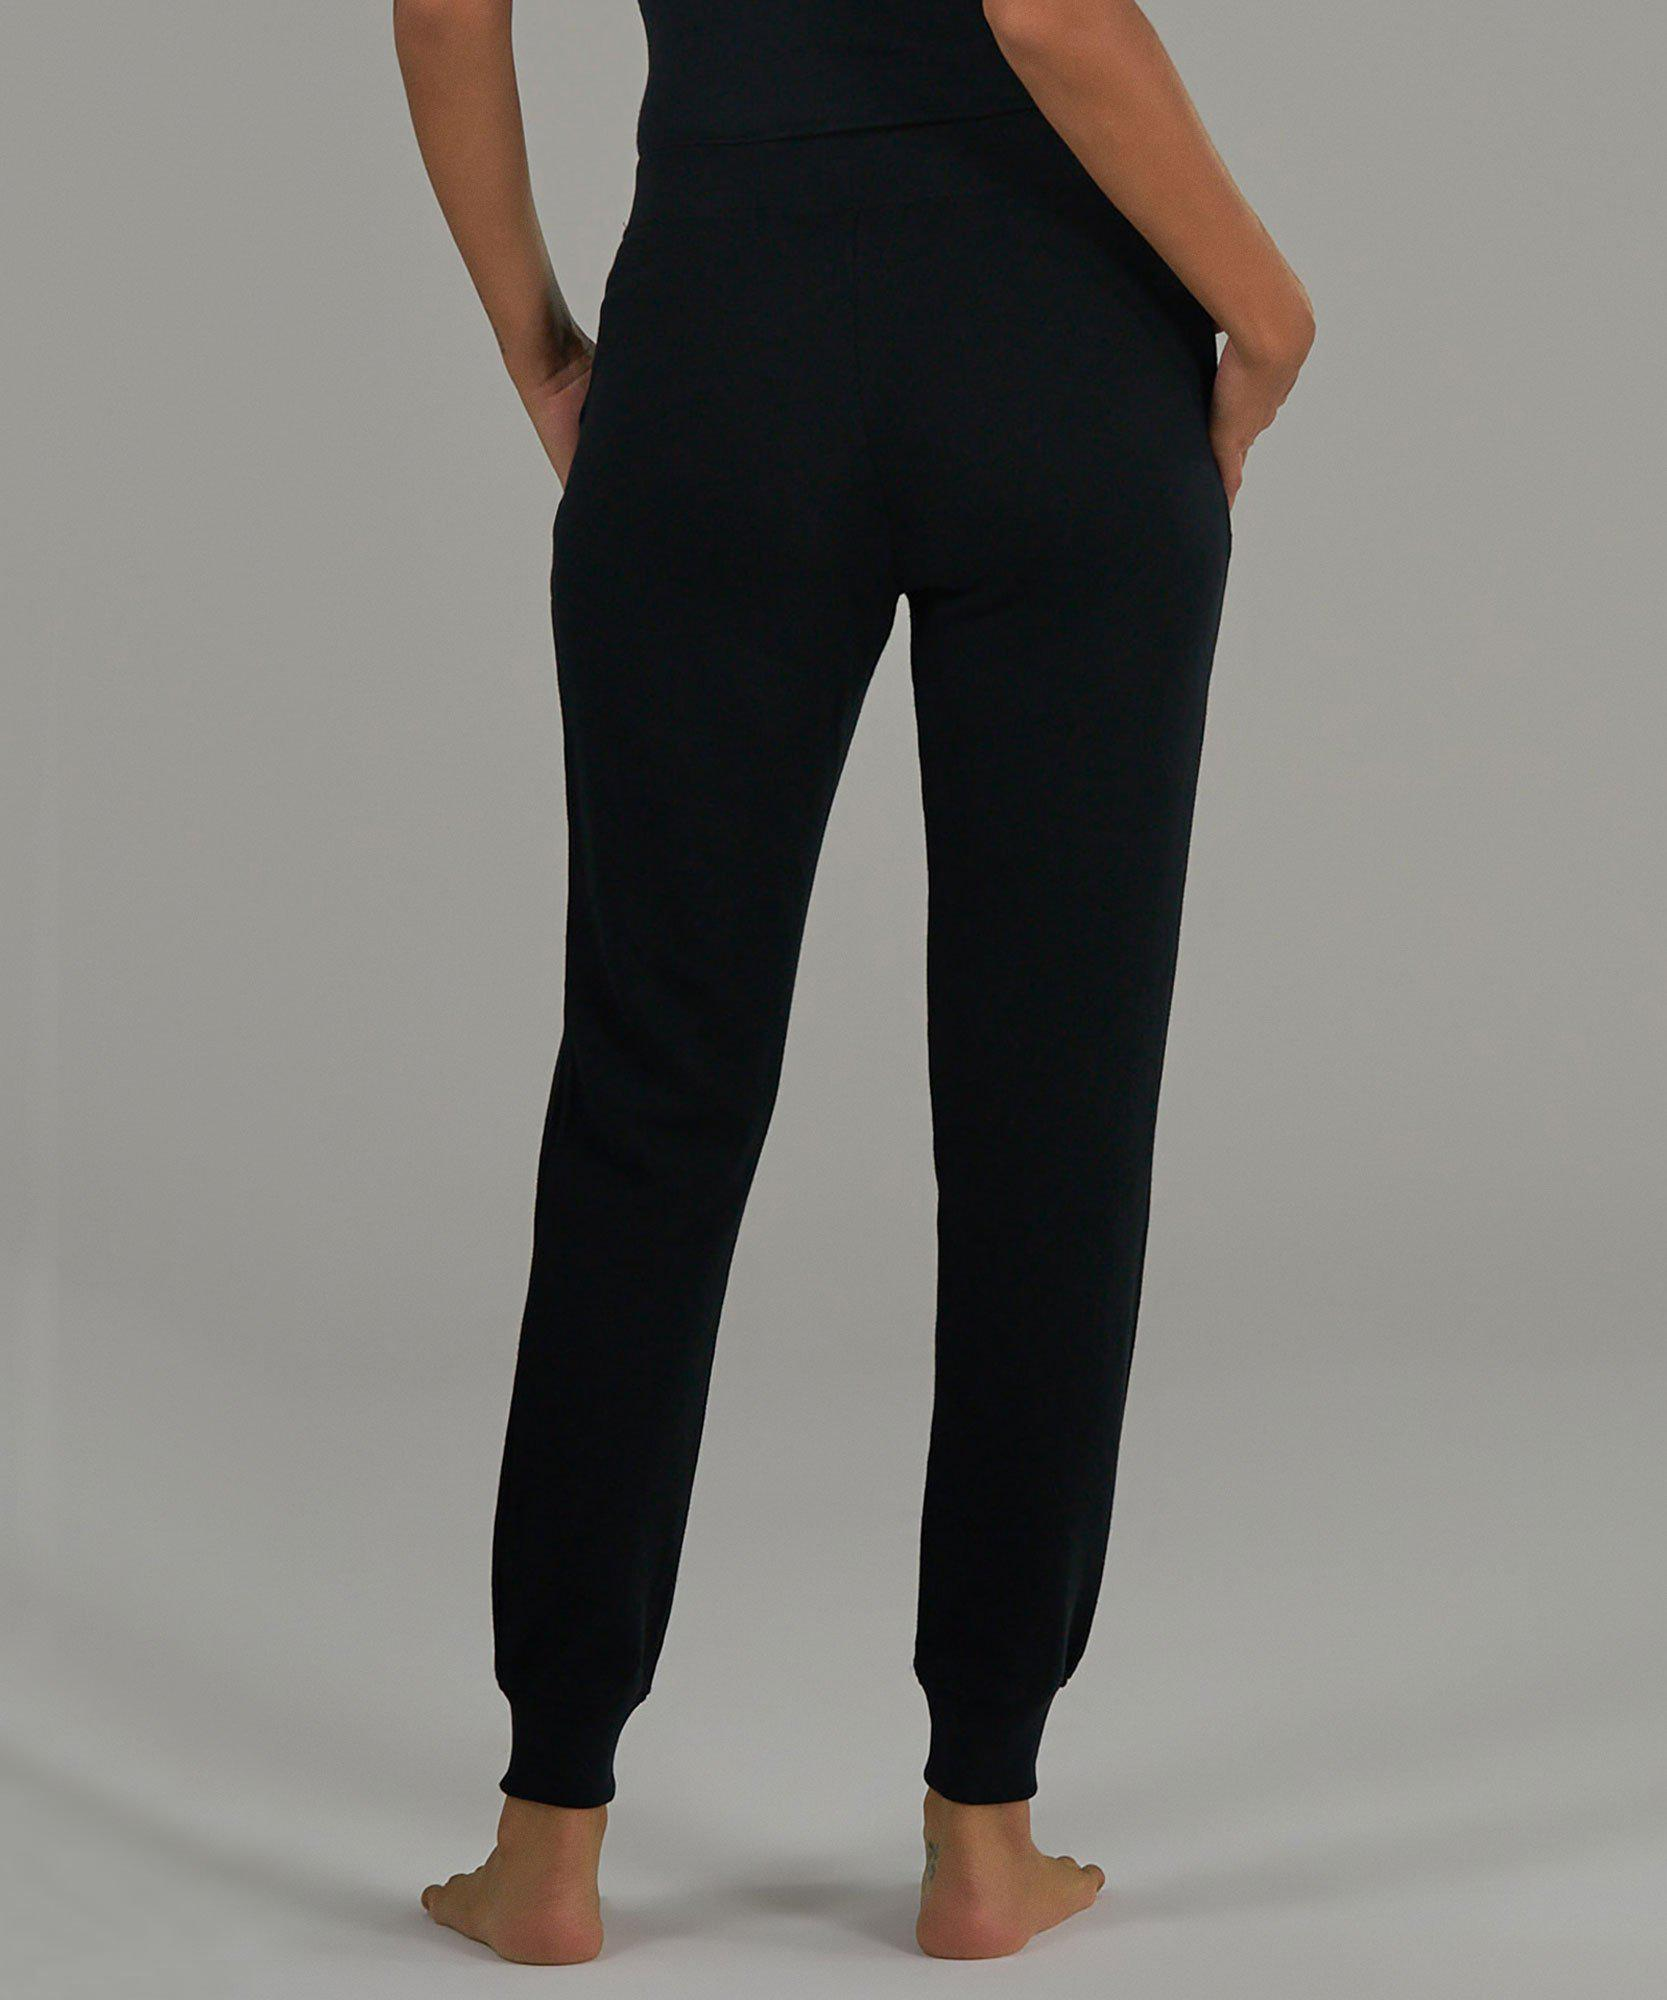 French Terry Sweatpants - Black 2